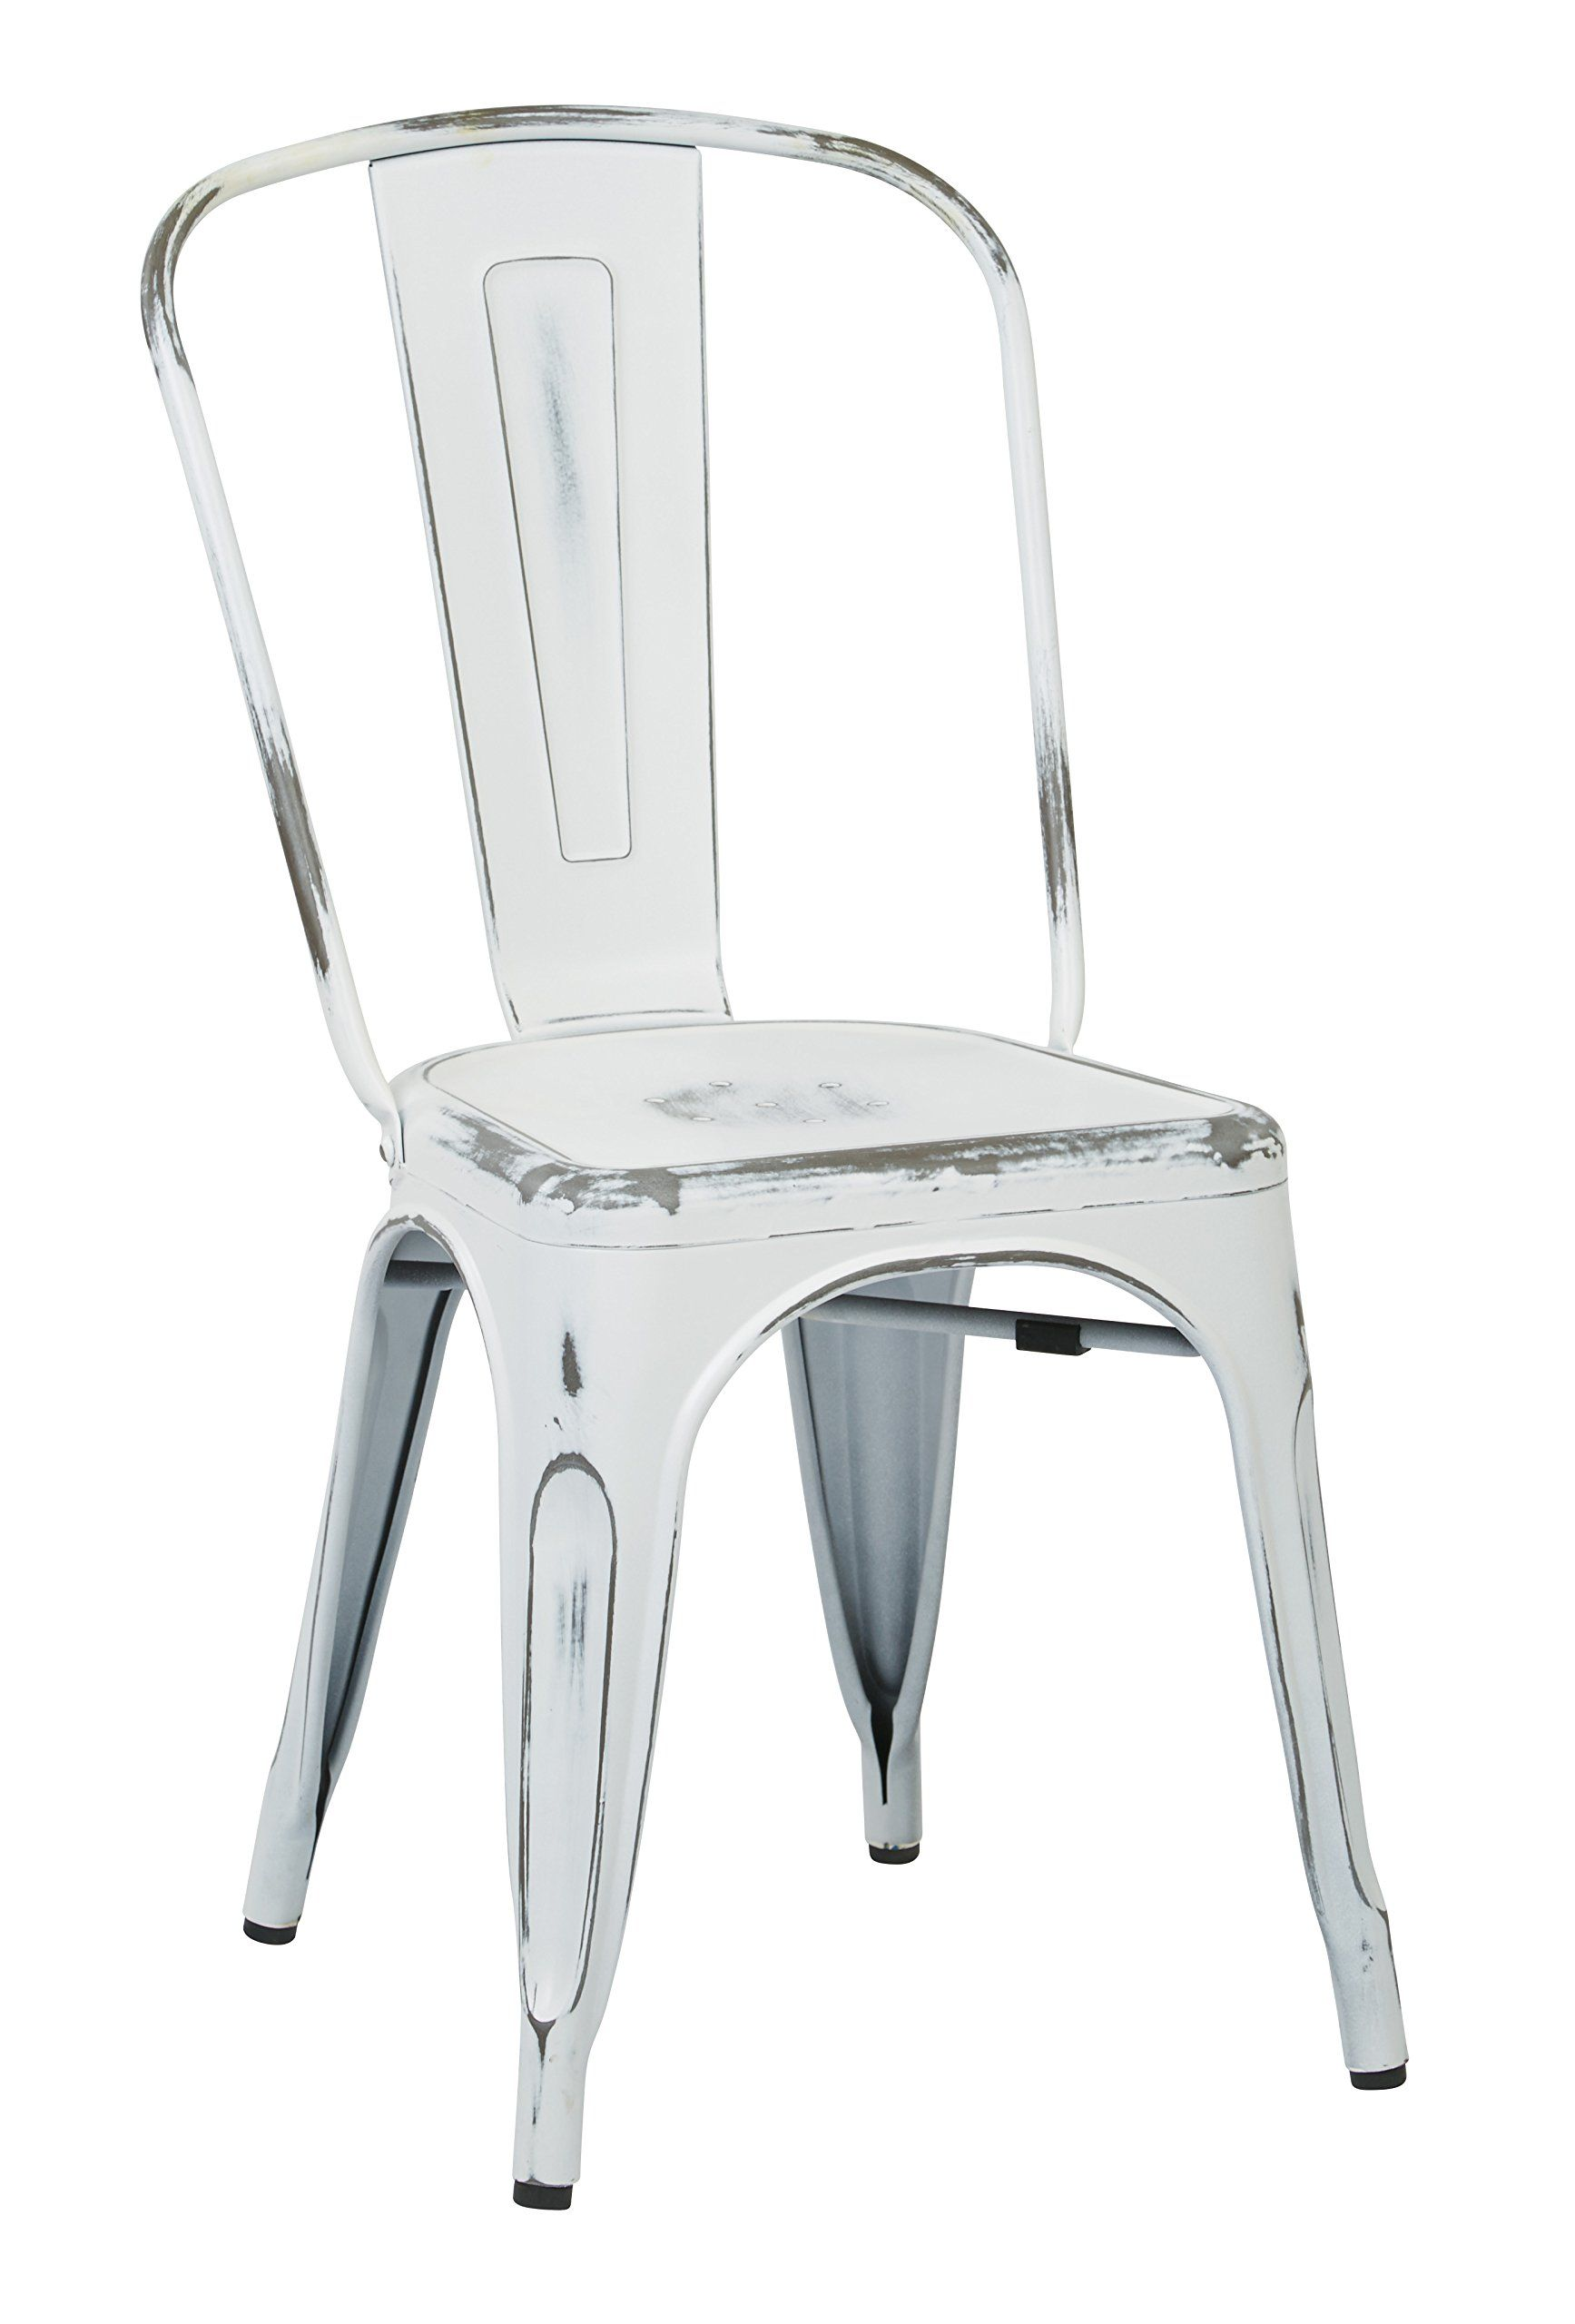 Vintage metal dining chair distressed white amazon com osp designs brw29a4 aw bristow armless chair antique white 4 pack patio lawn garden